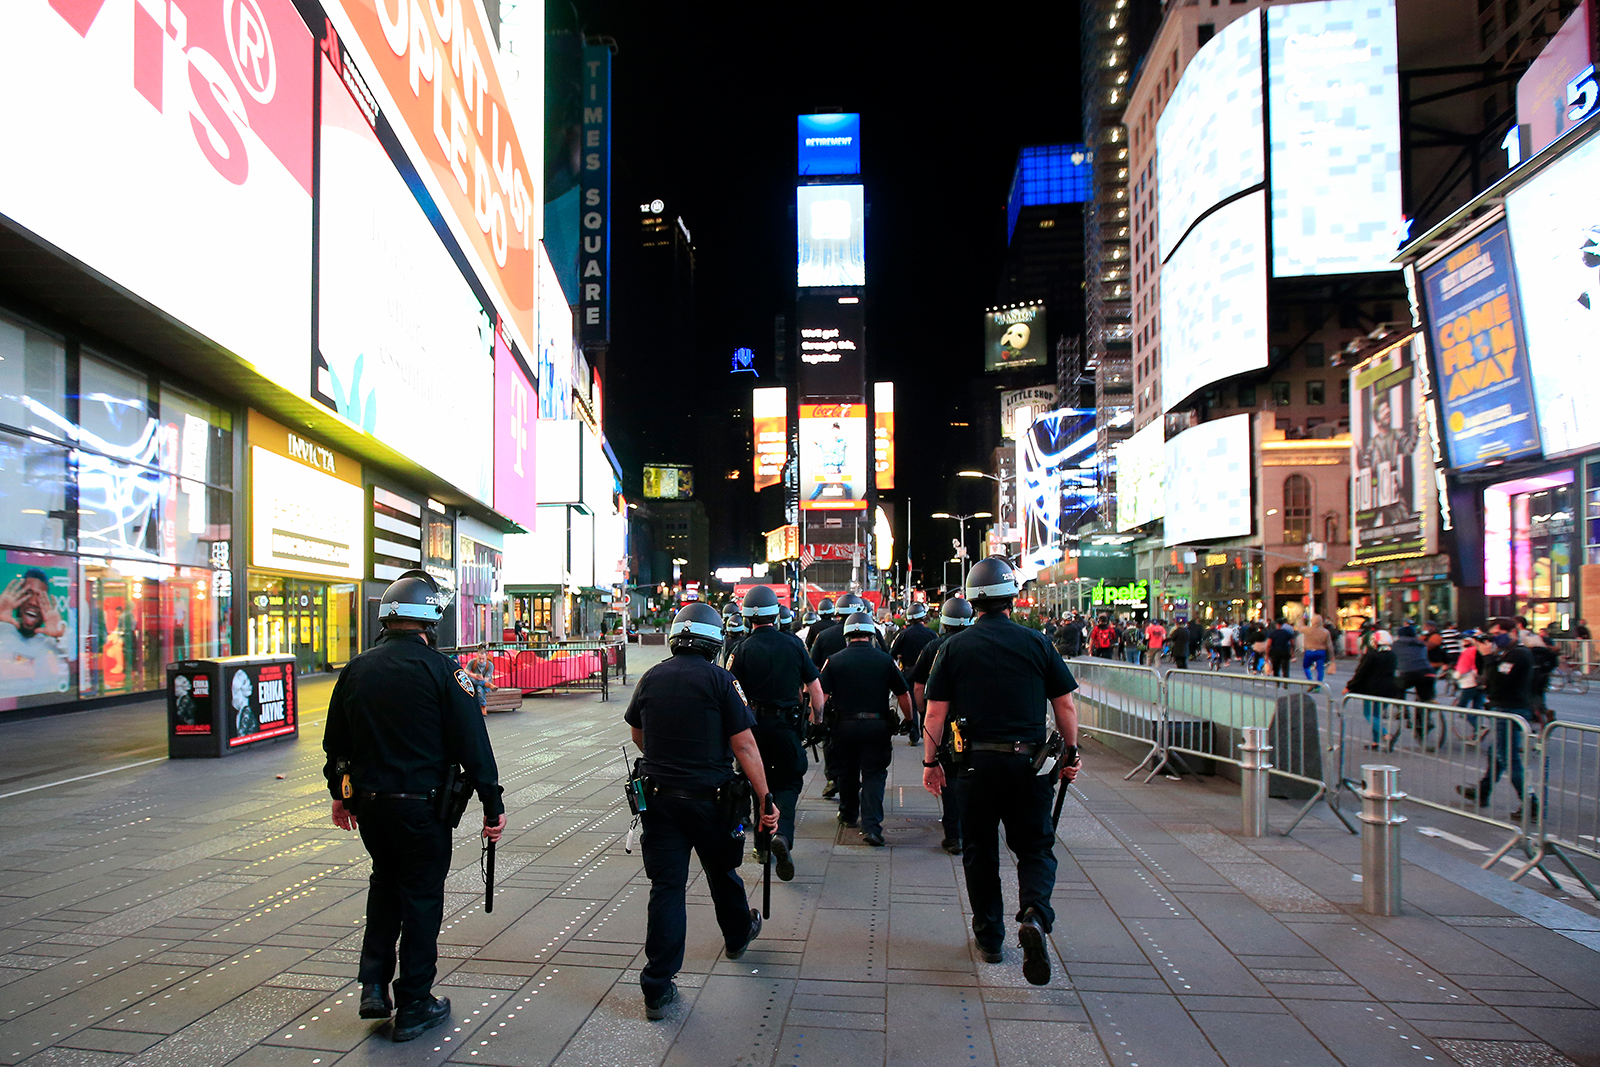 Officers patrol Time Square as activists hold a rally on May 31, in New York City.